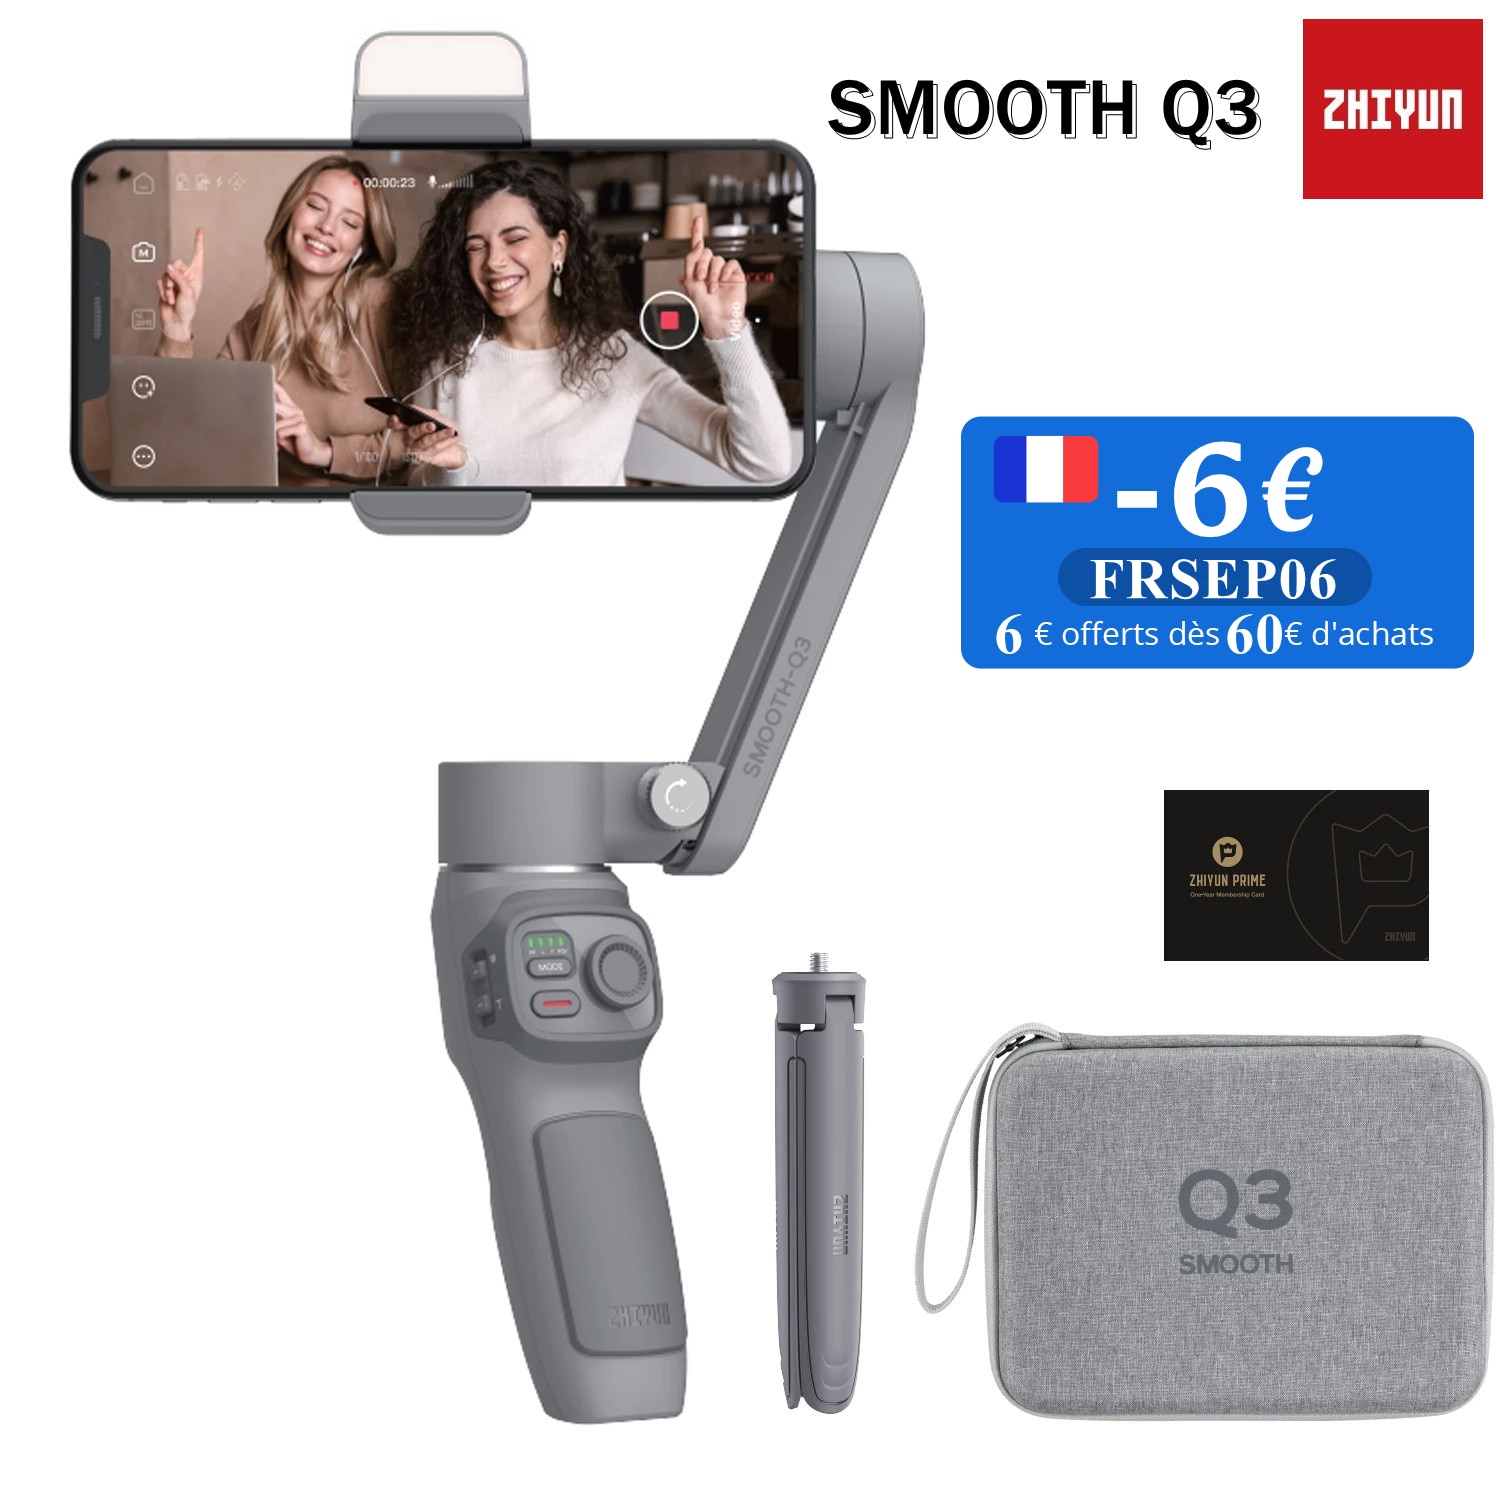 Promo Zhiyun Smooth Q3 3-Axis Gimbal Stabilizer with 180° Rotatable Fill Light for iPhone 12Pro Xs Max 8 Android Cell Phone Smartphone